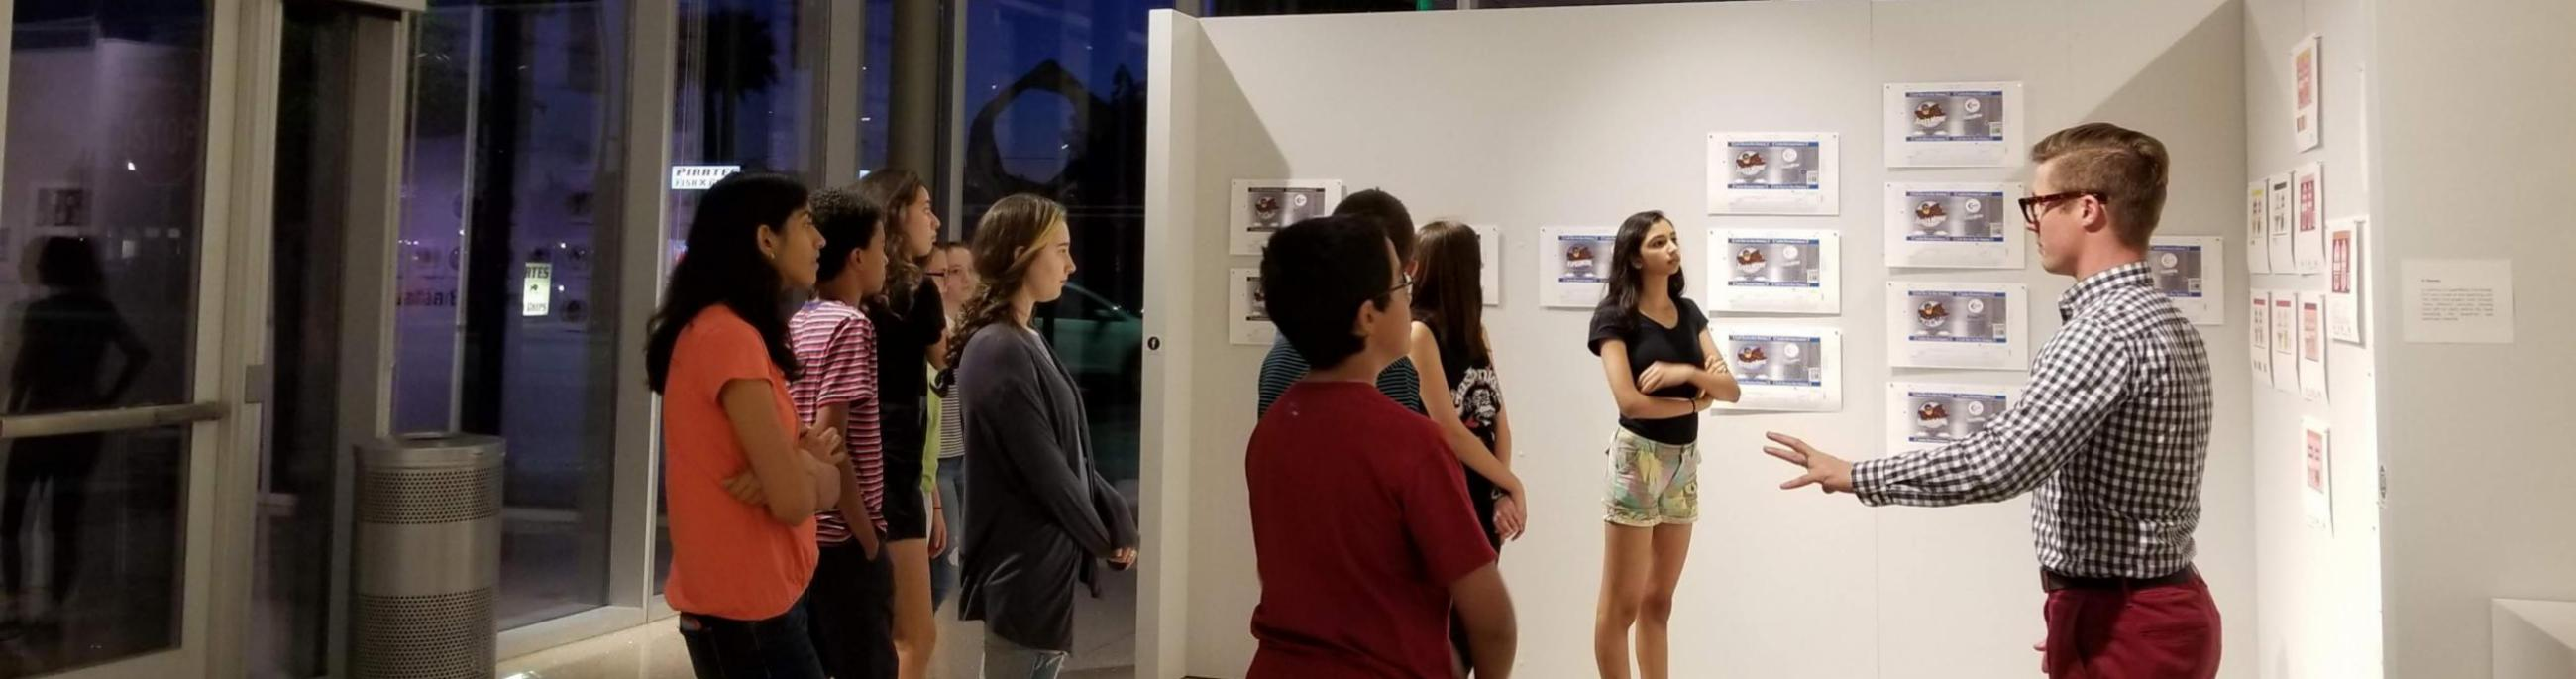 Youth Advisory Council is a youth program at Chandler Center for the Arts for teens